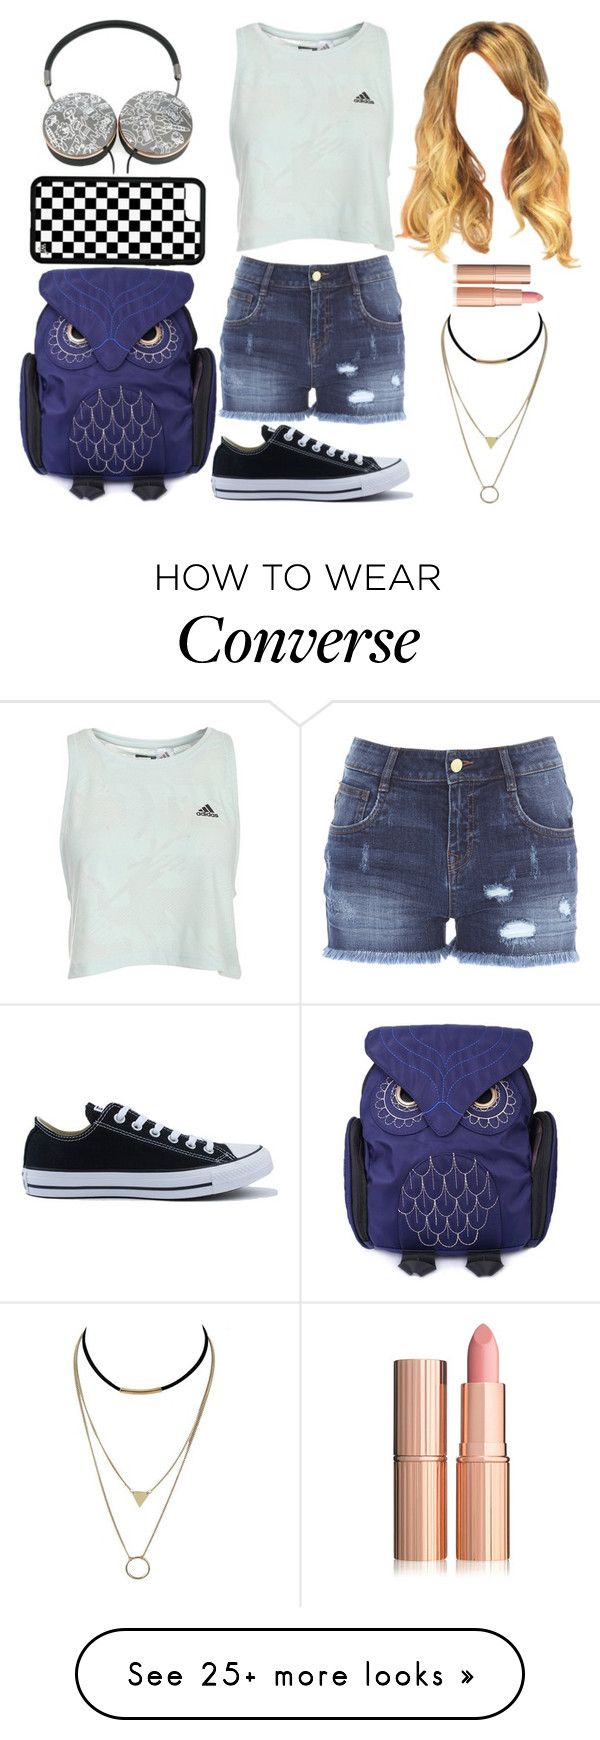 """""""Going Out"""" by lucy-wolf on Polyvore featuring Converse and Mira Mikati"""